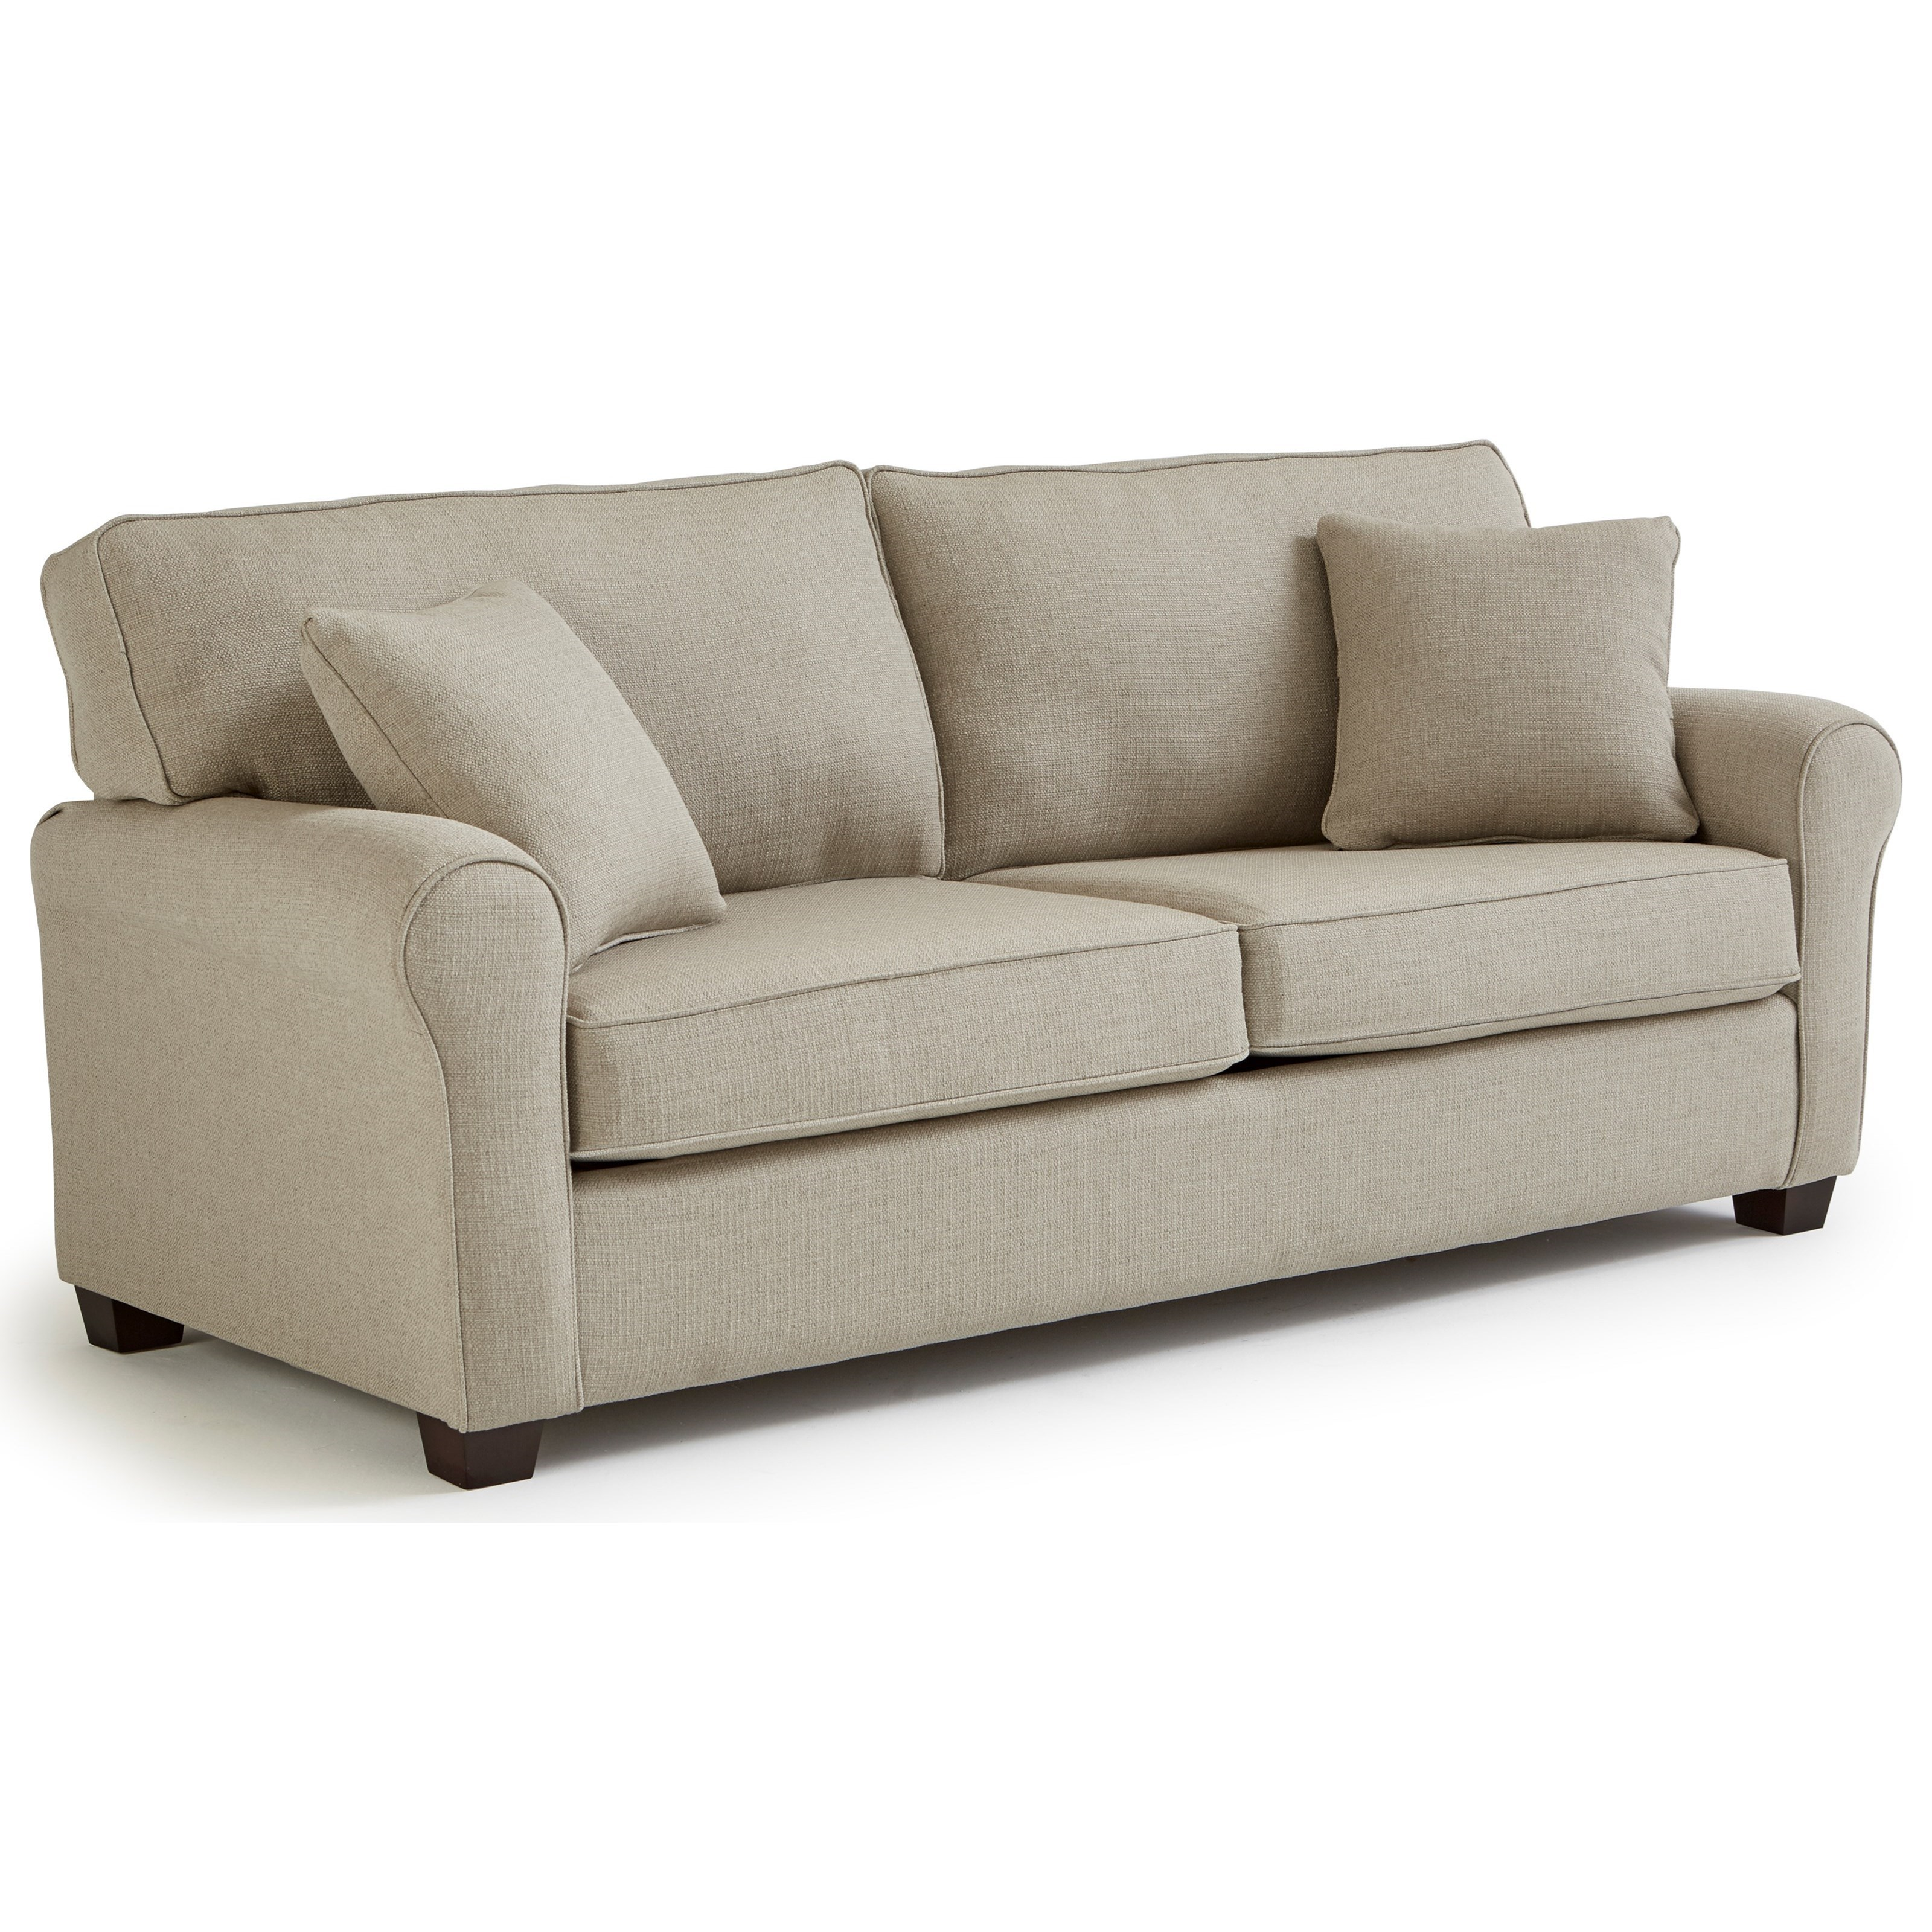 Best Home Furnishings Shannon Queen Sofa Sleeper With Air